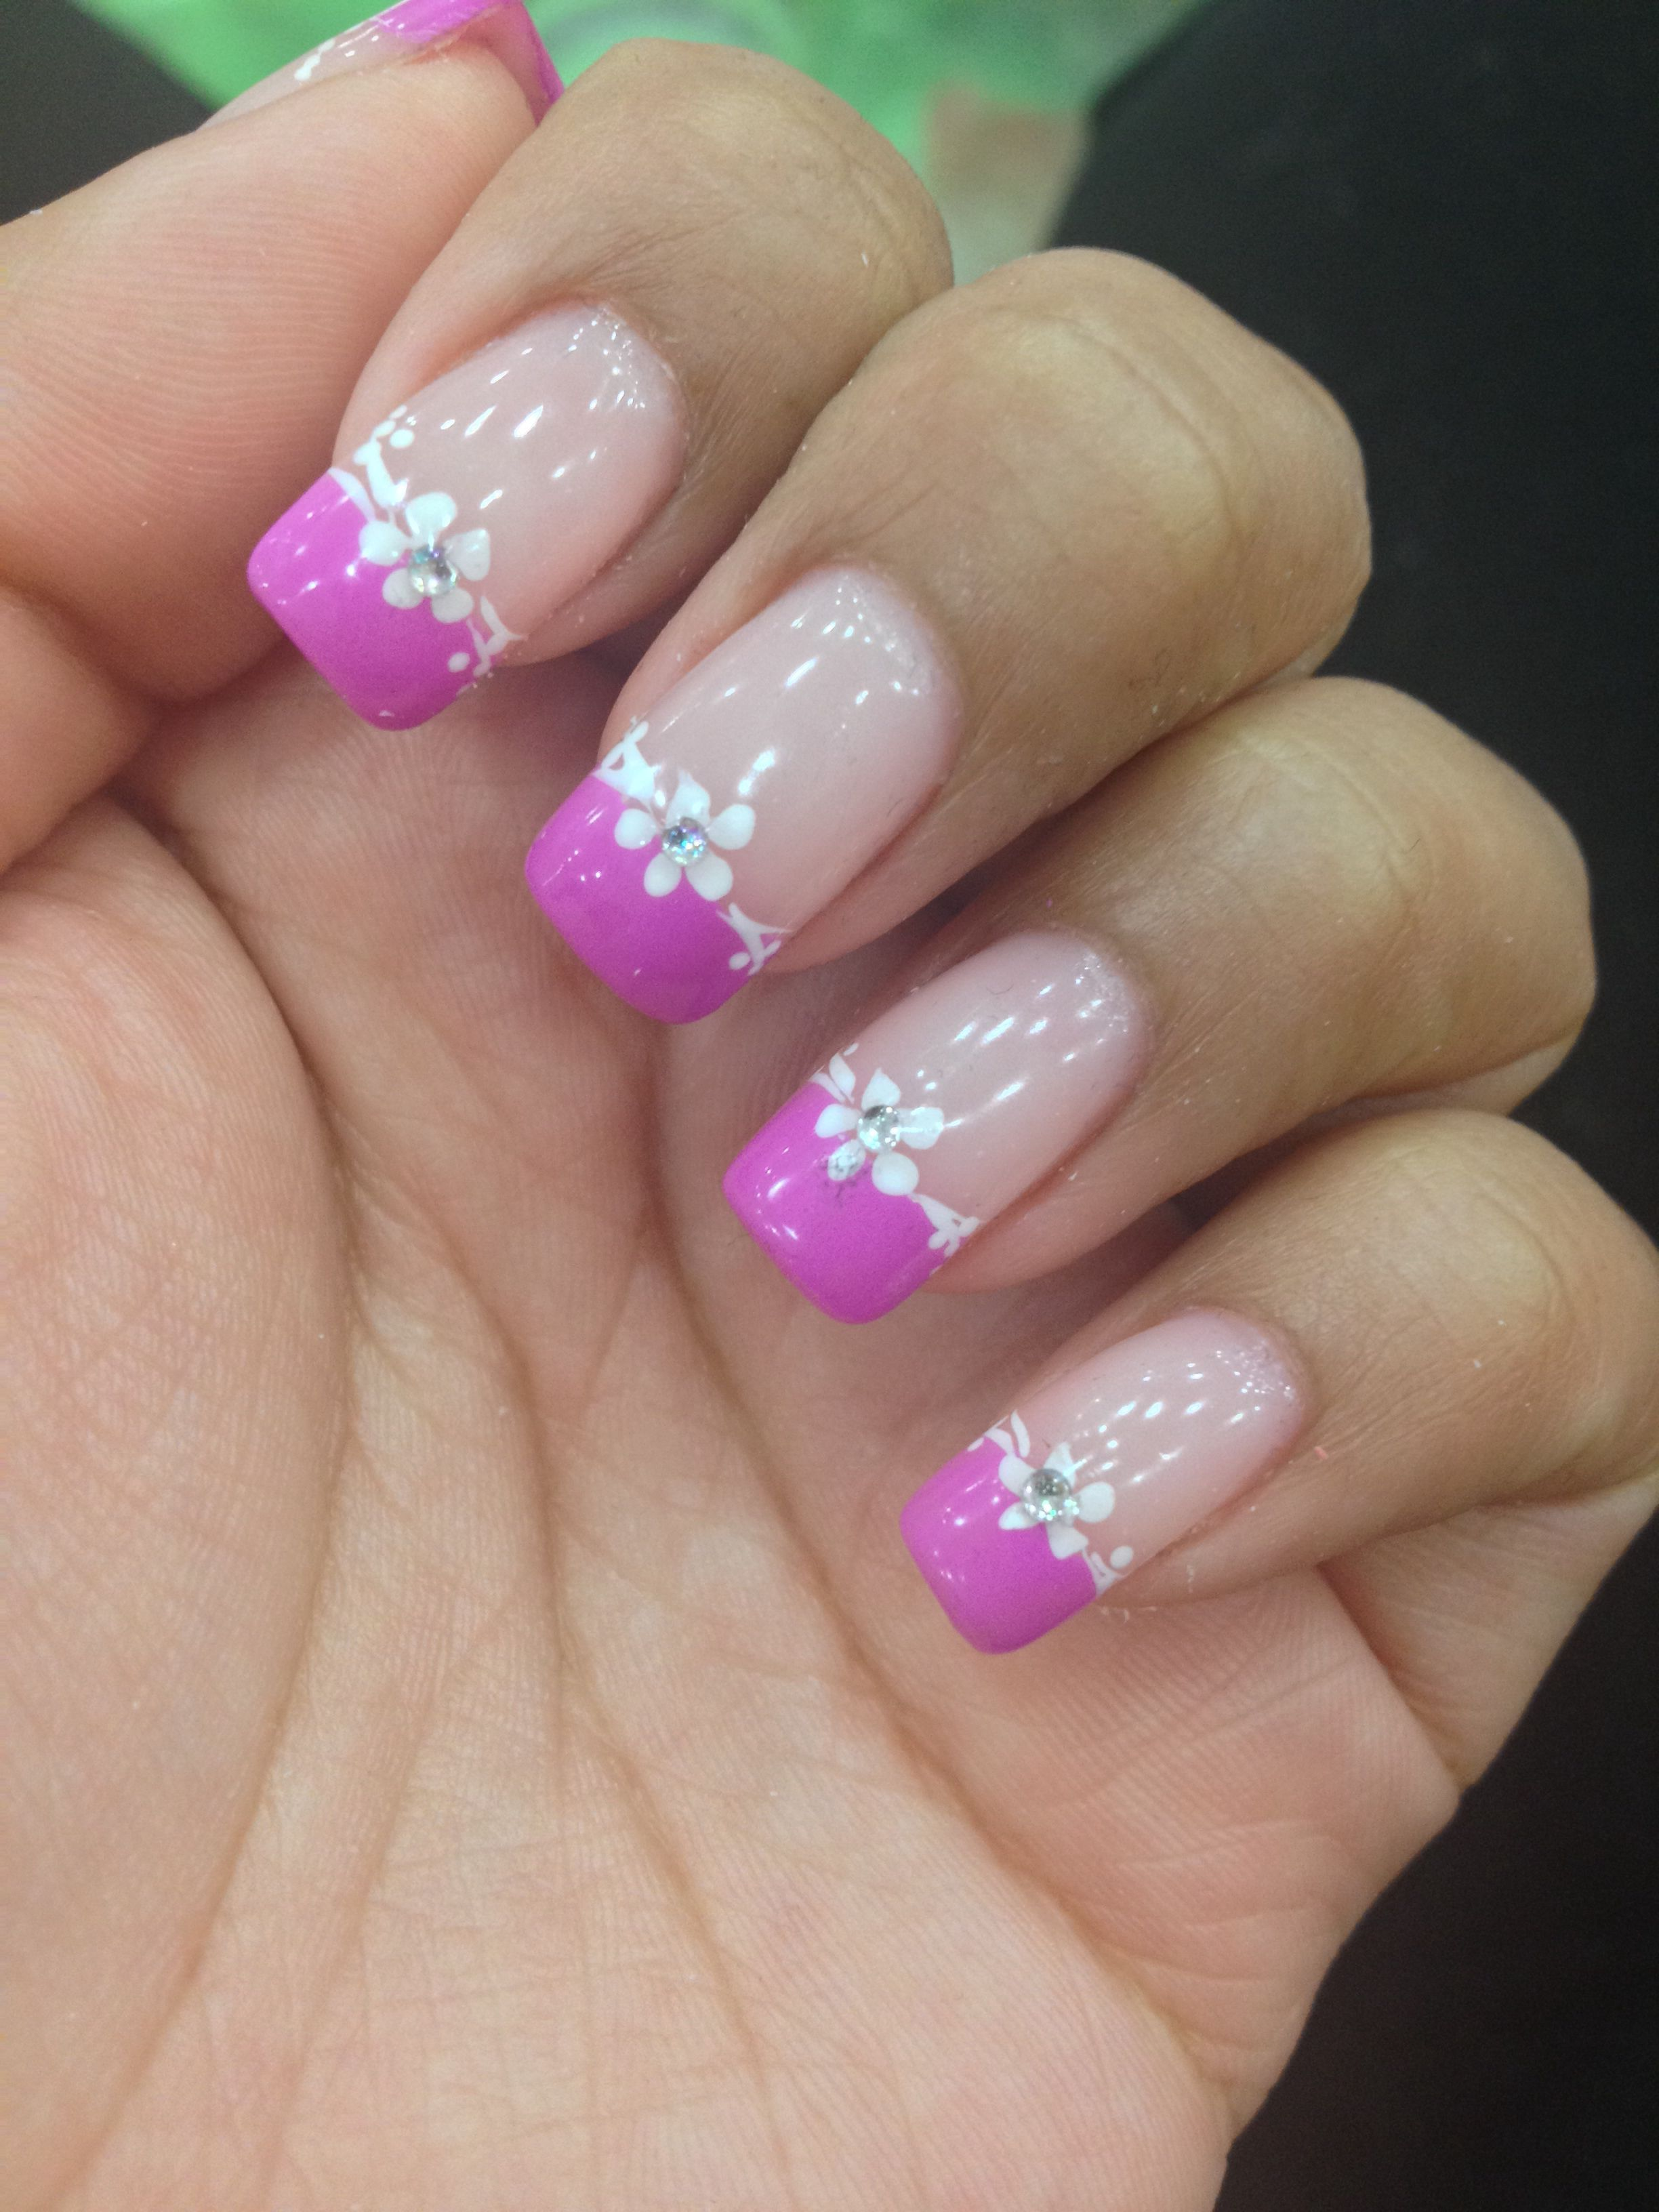 Pink French Tip Nails With Design In 2020 French Tip Nail Designs Nail Designs Spring Cute Spring Nails